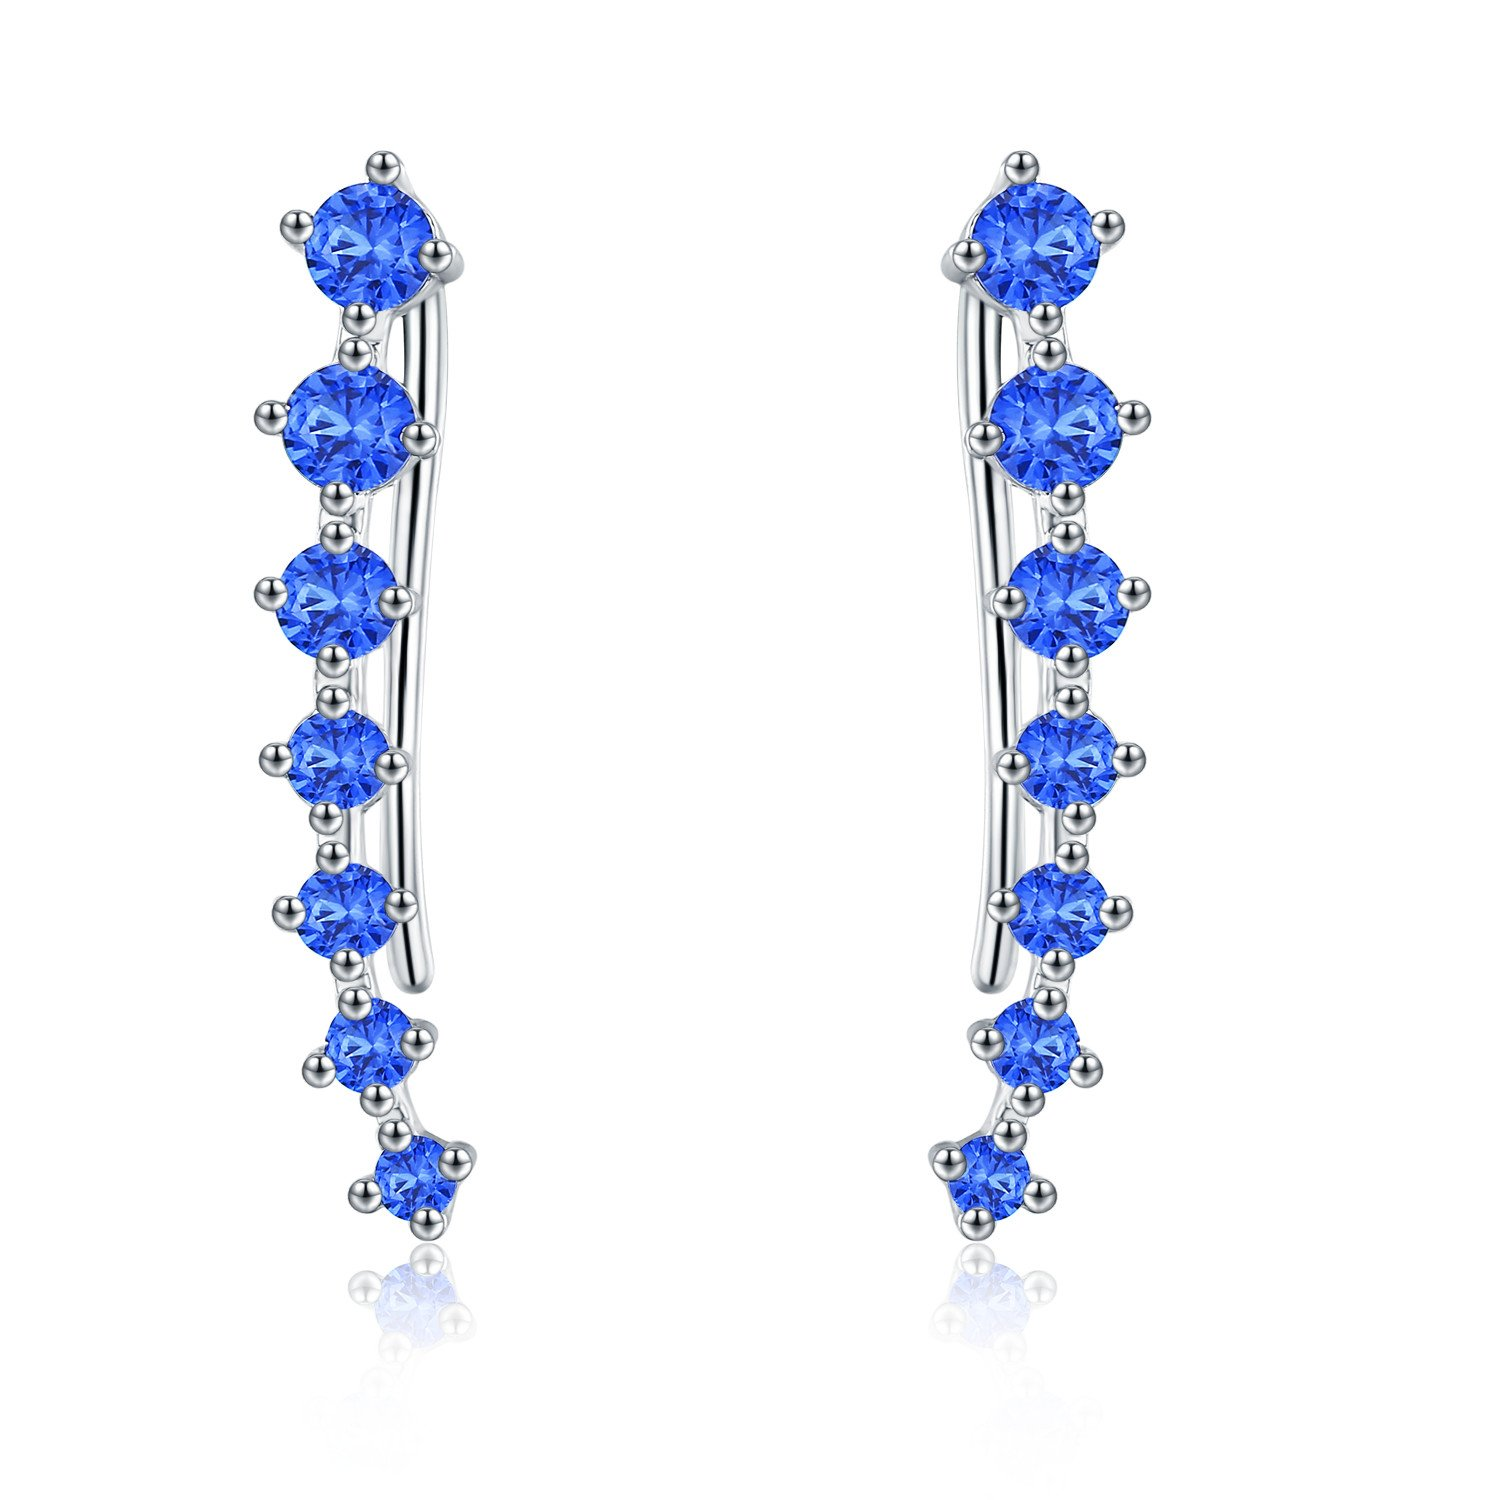 EVER SHINE Ear Cuffs Vines Climbers Wrap Pierced Pins Hook Earrings CZ Crystal 7 Stones (Silver Tone with Blue Cubic Zirconia)